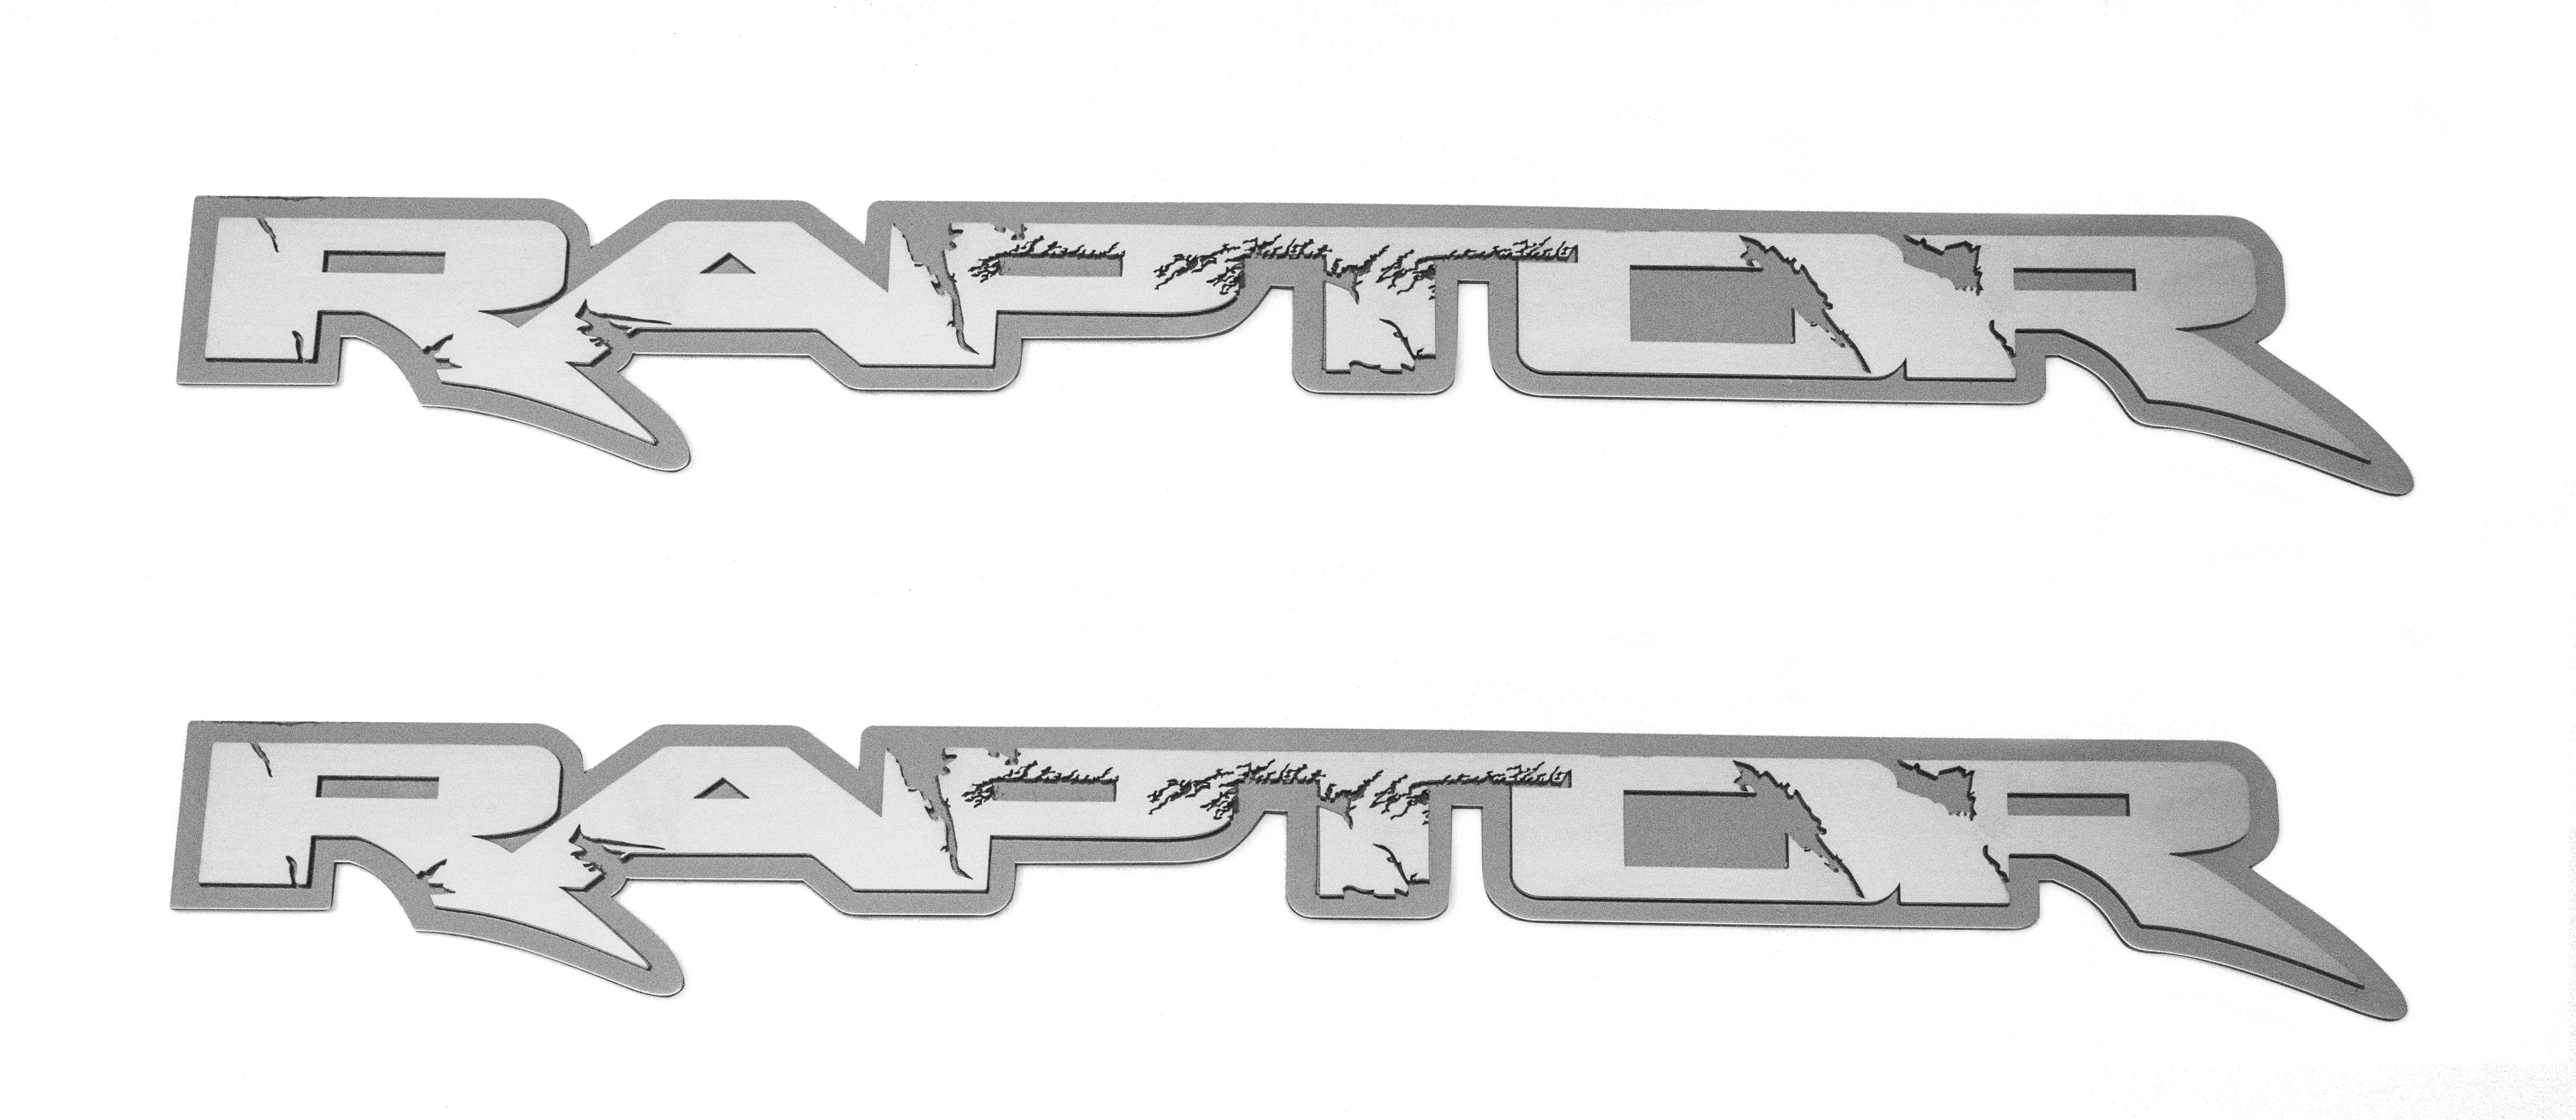 "2010-2014 Ford Raptor - RAPTOR Deluxe Emblem(s) | Stainless Steel, Choose Finish & Size American Car Craft 12"" Polished on Brushed - 2Pc"